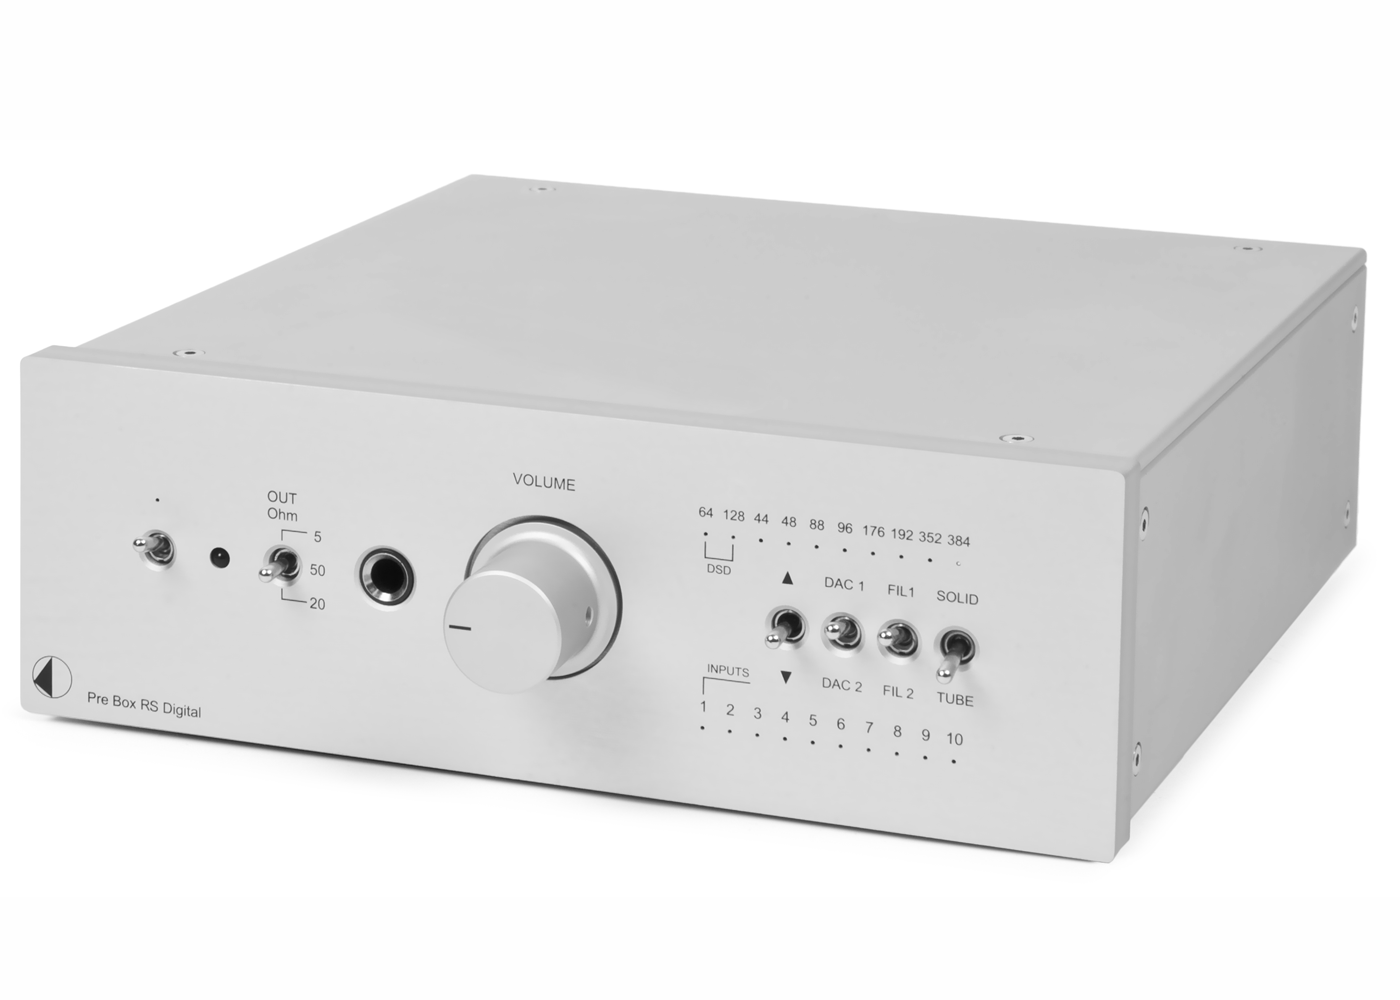 project pre box s2 digital dac